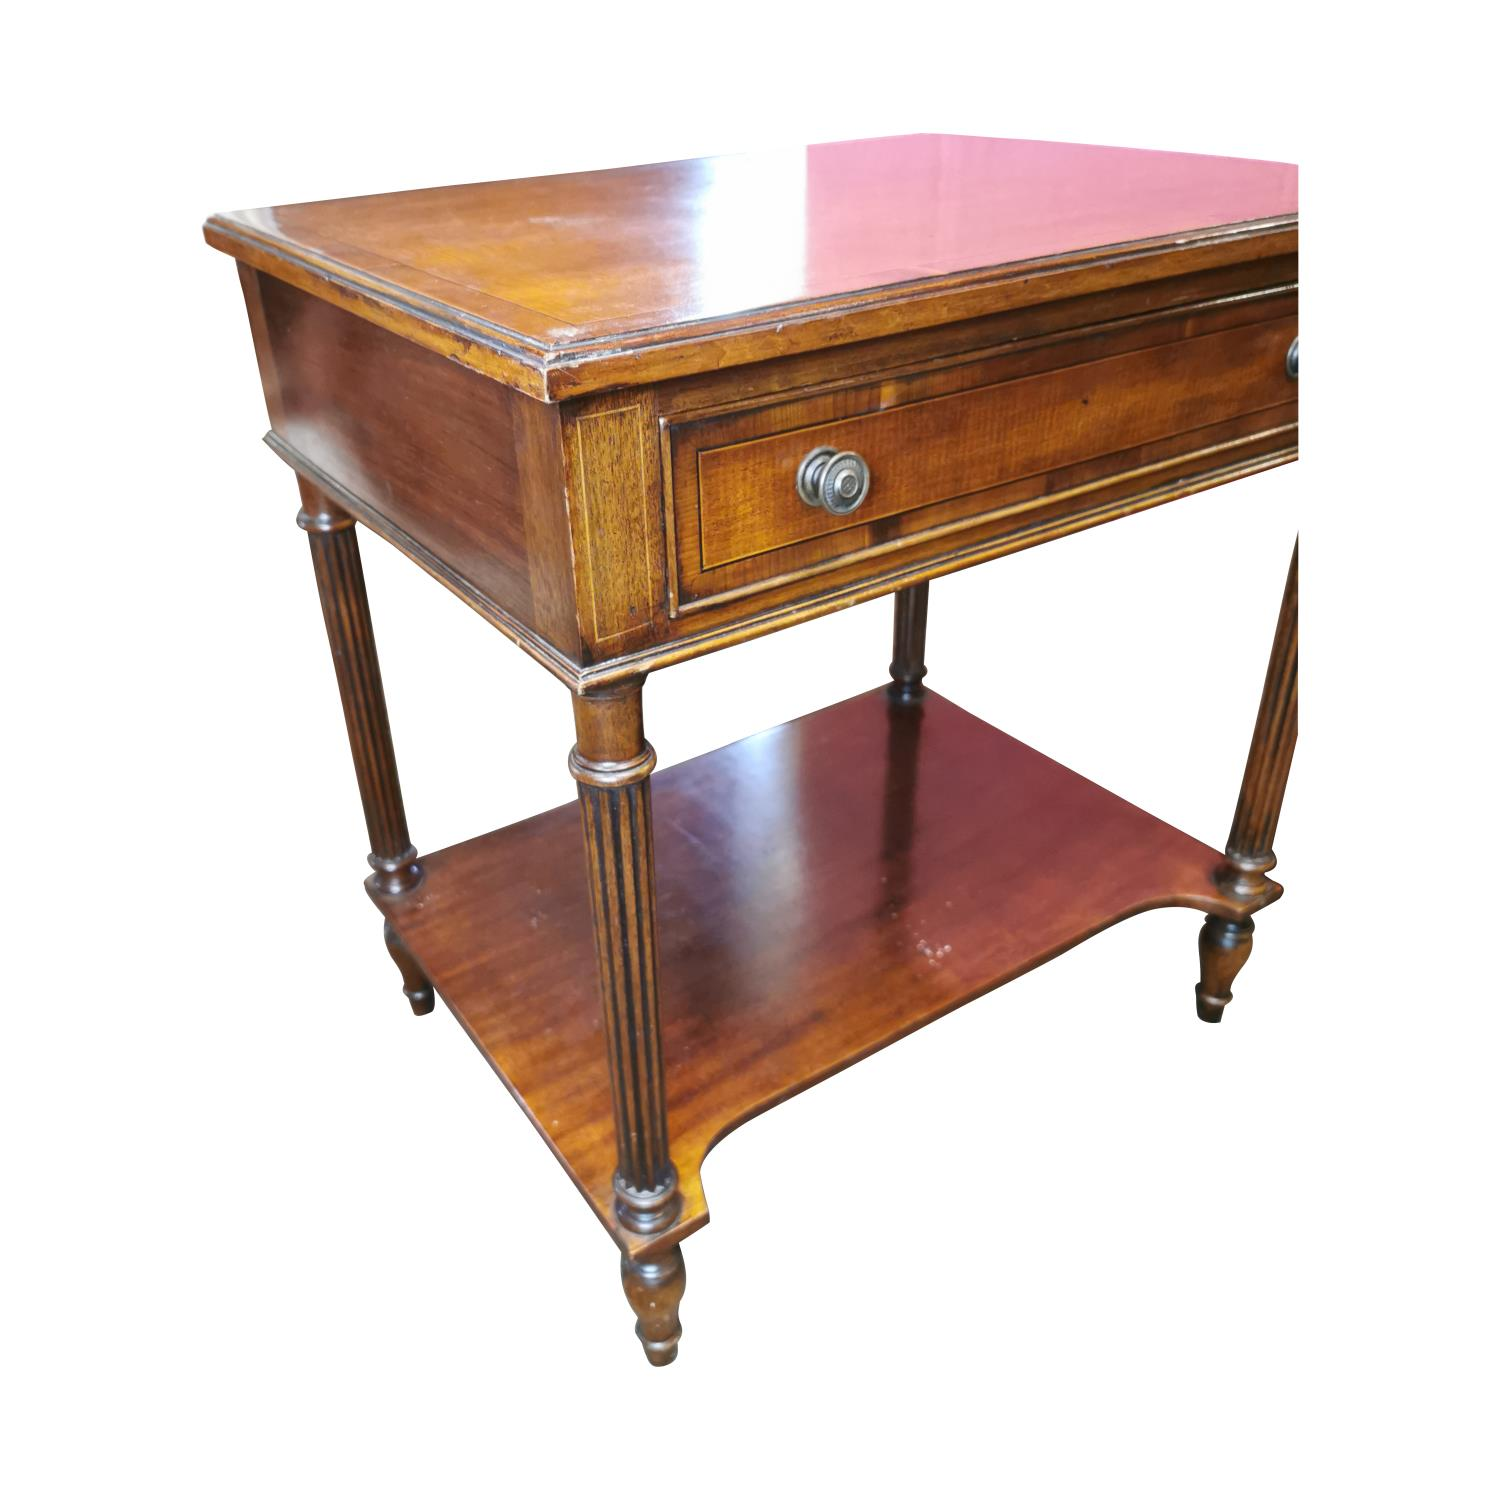 Pair of inlaid mahogany two tier lamp tables - Image 2 of 3